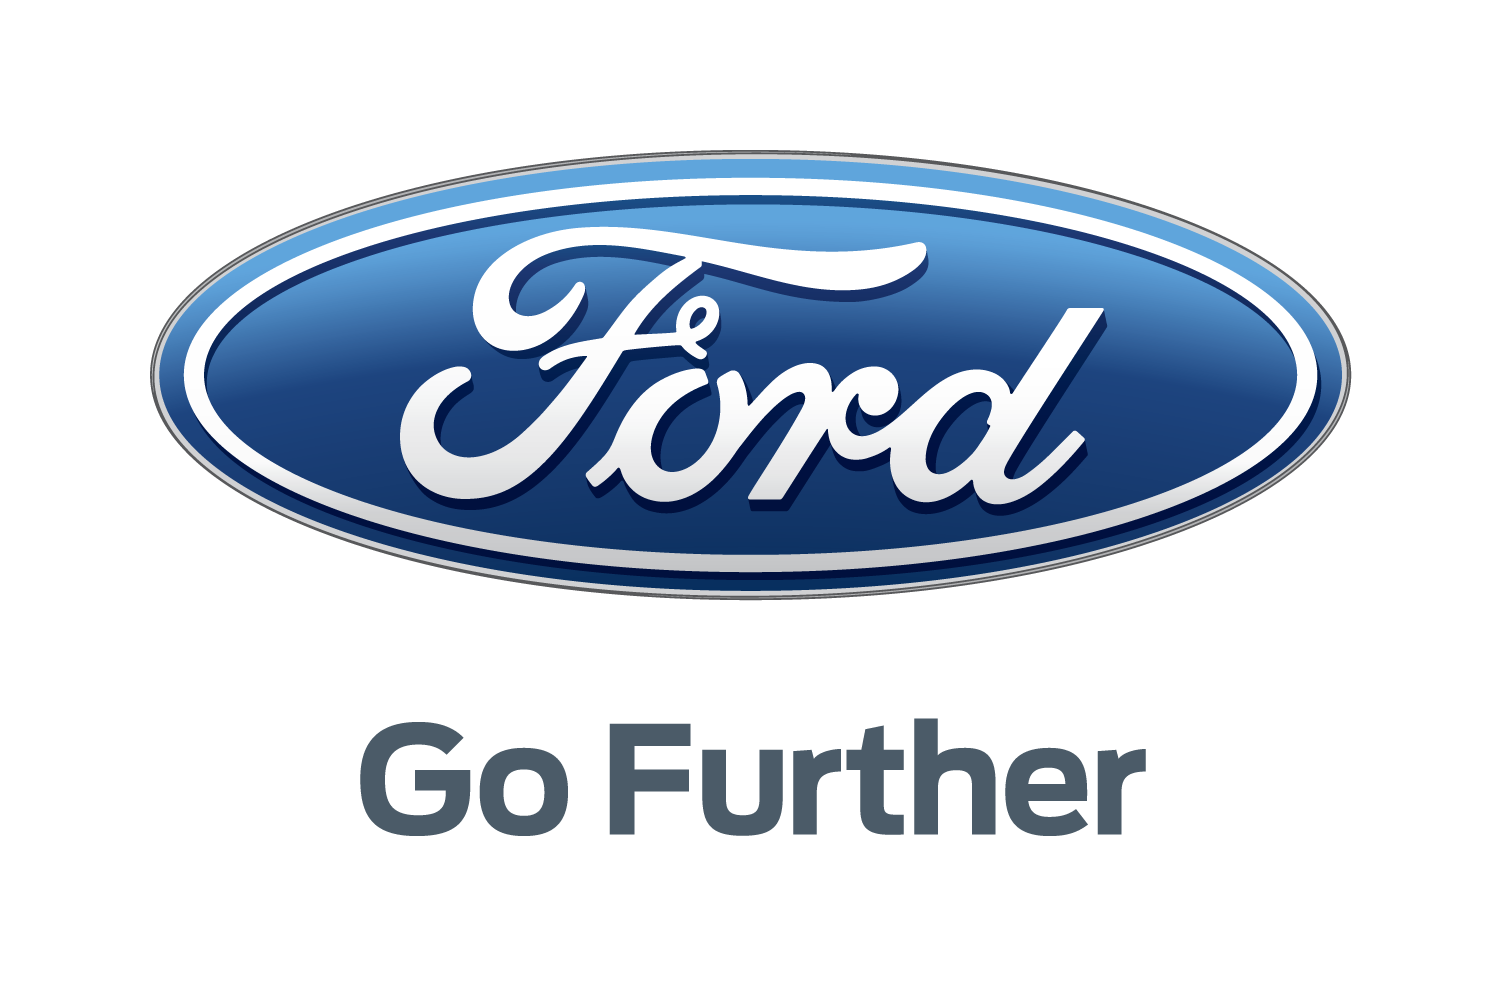 Ed koehn ford lincoln go further with ford night